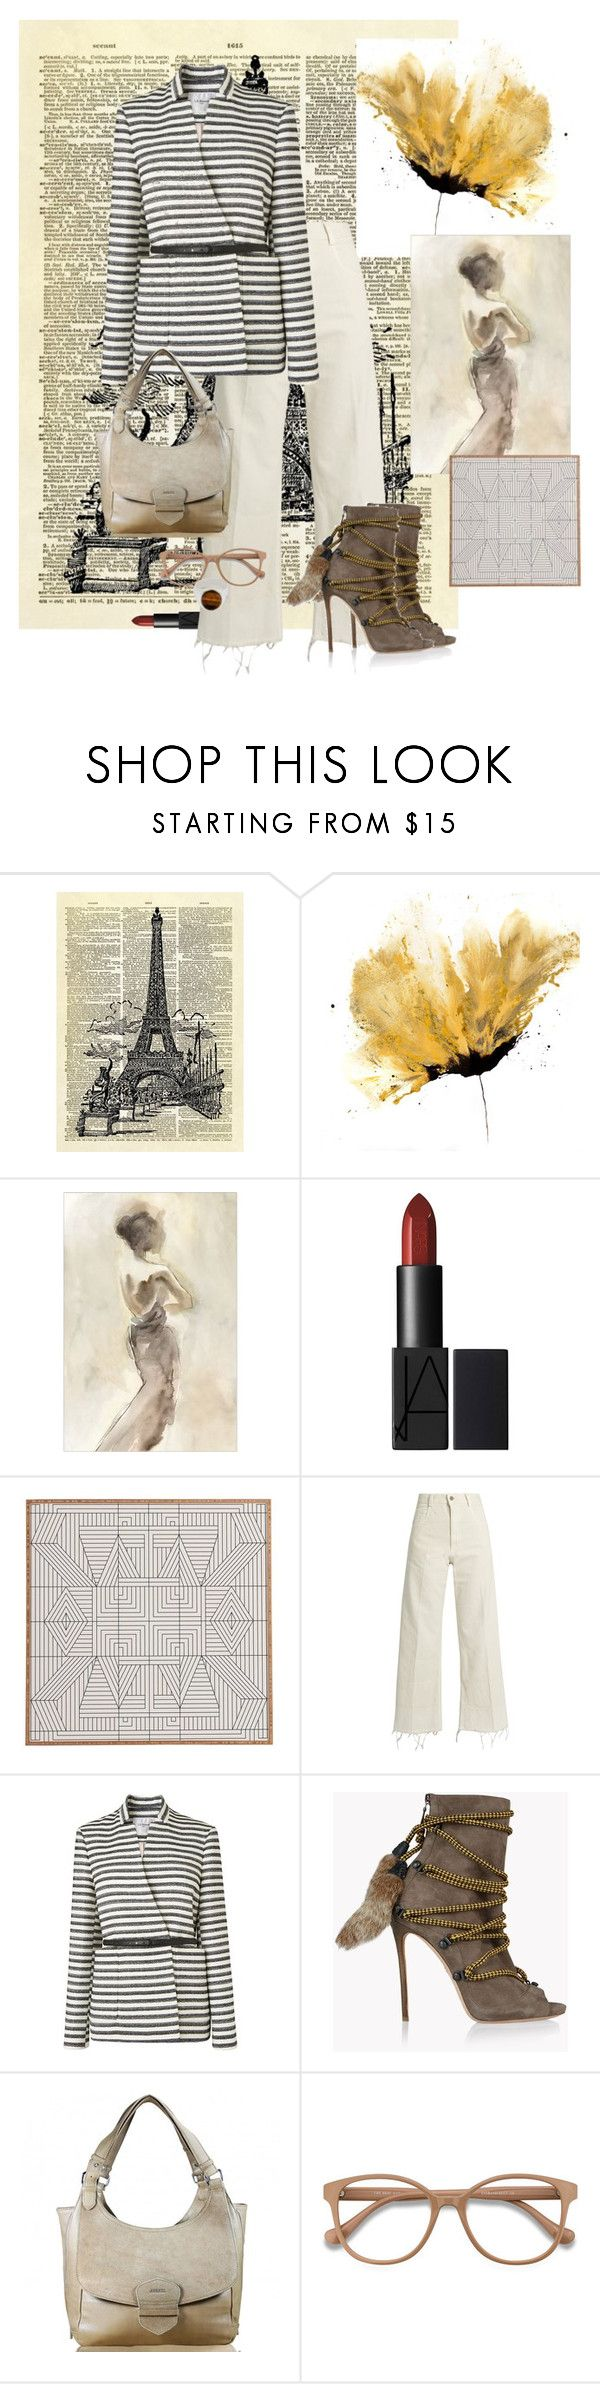 """""""Centered"""" by sherrie-mock ❤ liked on Polyvore featuring Rachel Comey, L.K.Bennett, Dsquared2, EyeBuyDirect.com and Tom Wood"""